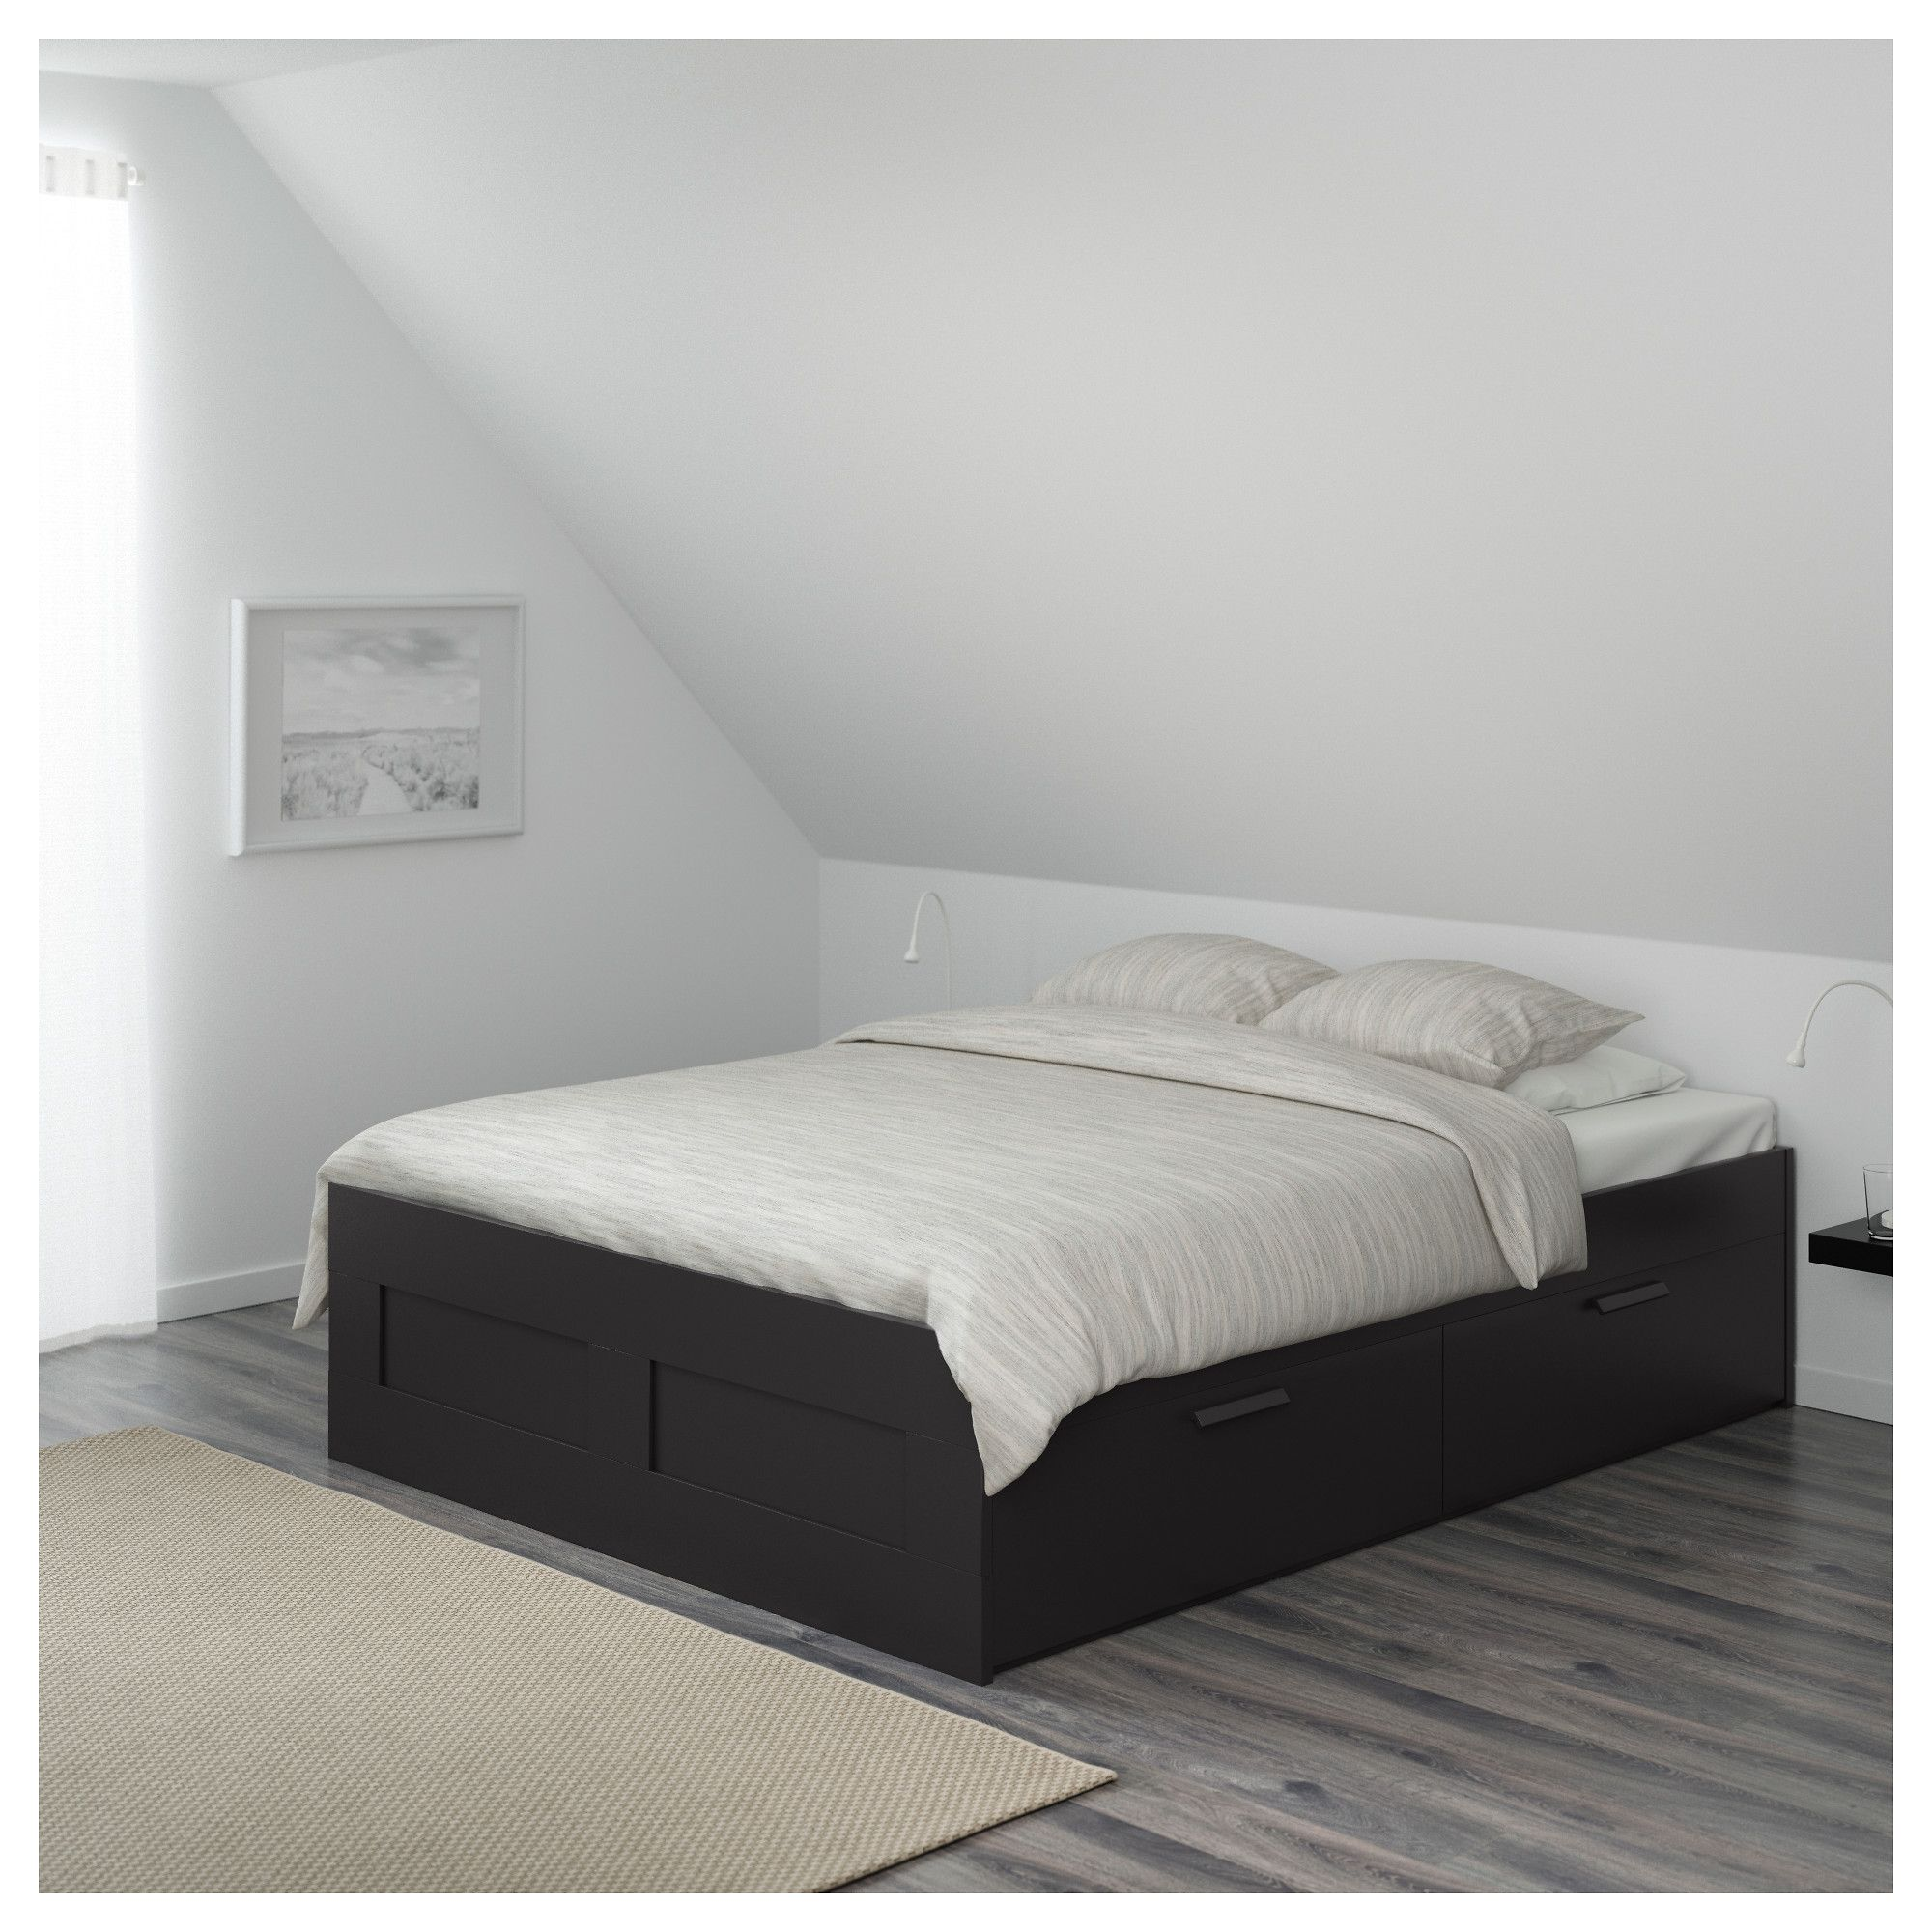 Ikea Brimnes Bed Frame With Storage Black Luroy Bed Frame